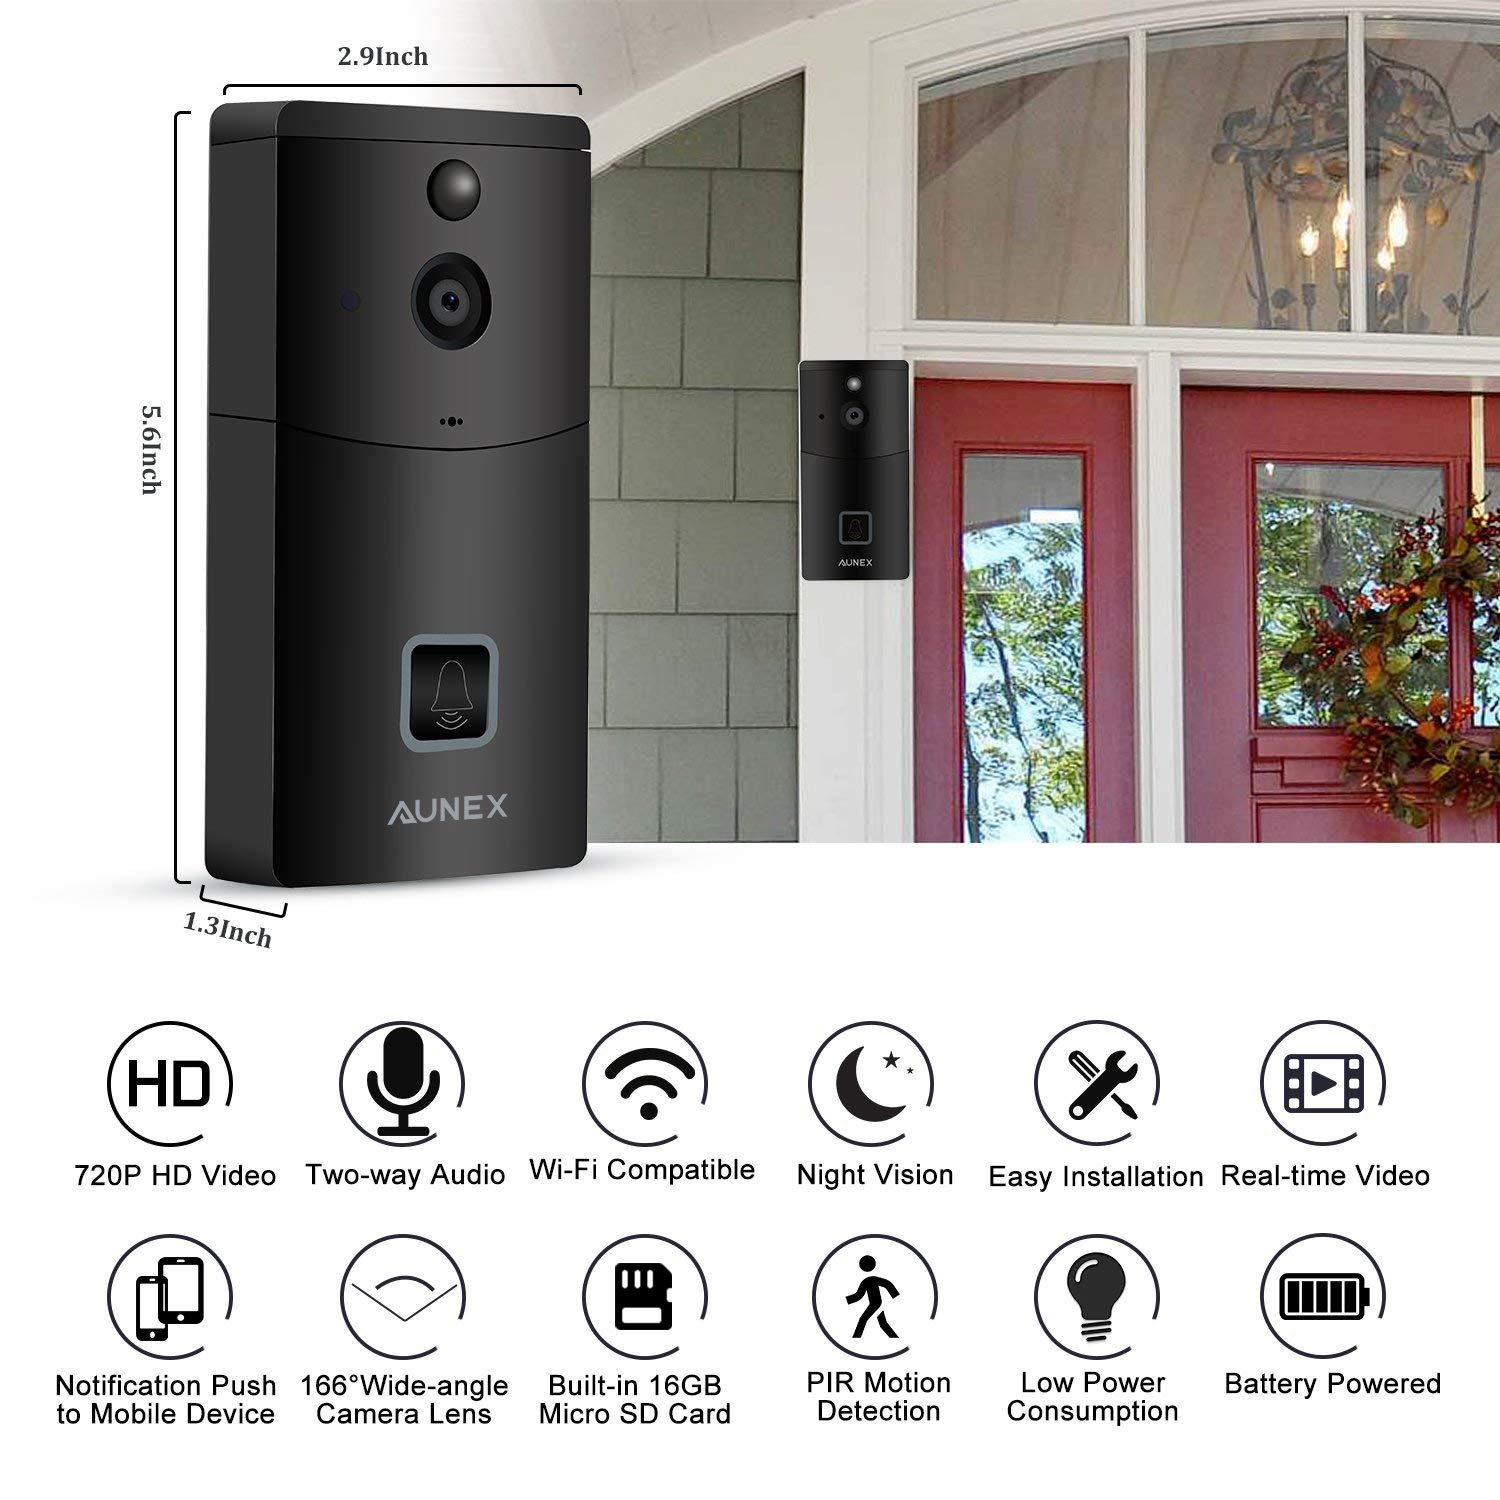 Video Doorbell, WIFI Wireless Video Doorbell Camera 720P HD Security Camera PIR Motion Detection Night Vision Real-Time Video Two-Way Audio Wide-angle for IOS and Android Built-in 16GB SD Card(Black)